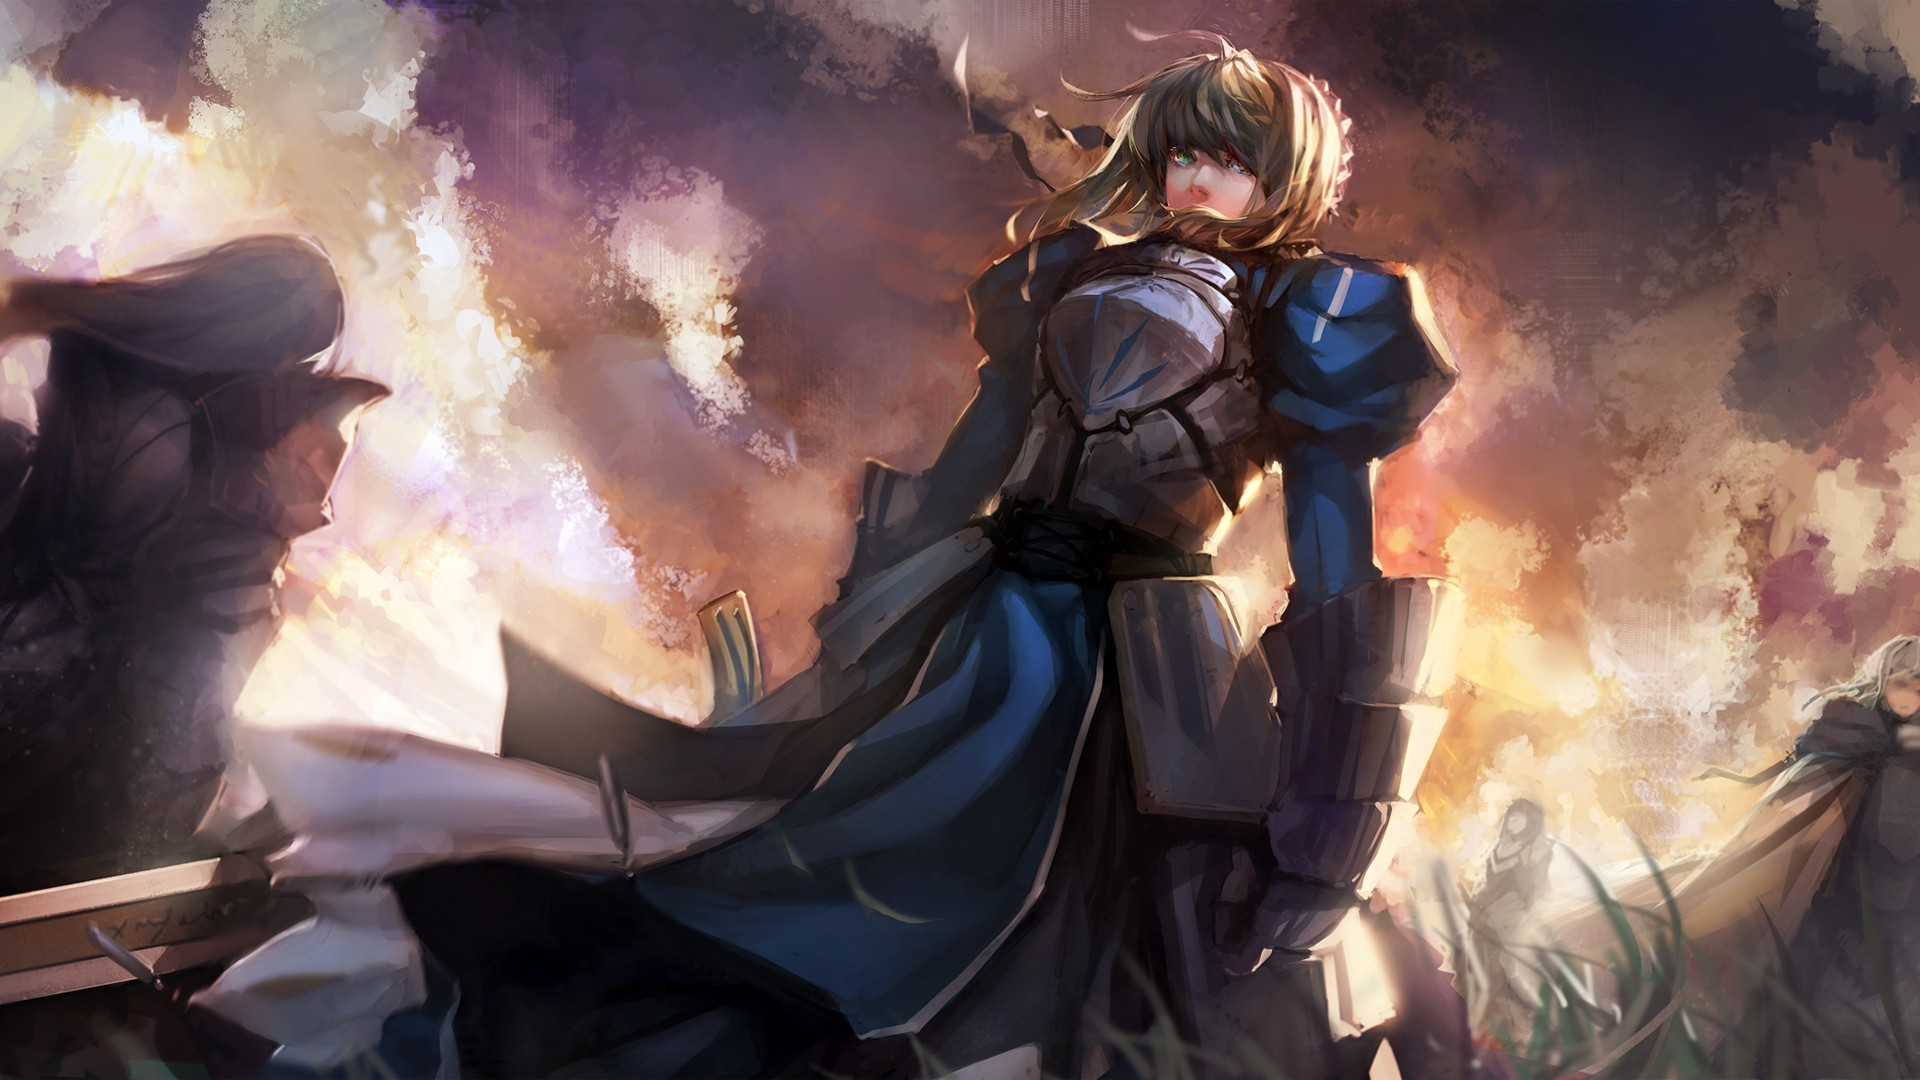 Epic Anime Wallpapers Hd ~ Sdeerwallpaper